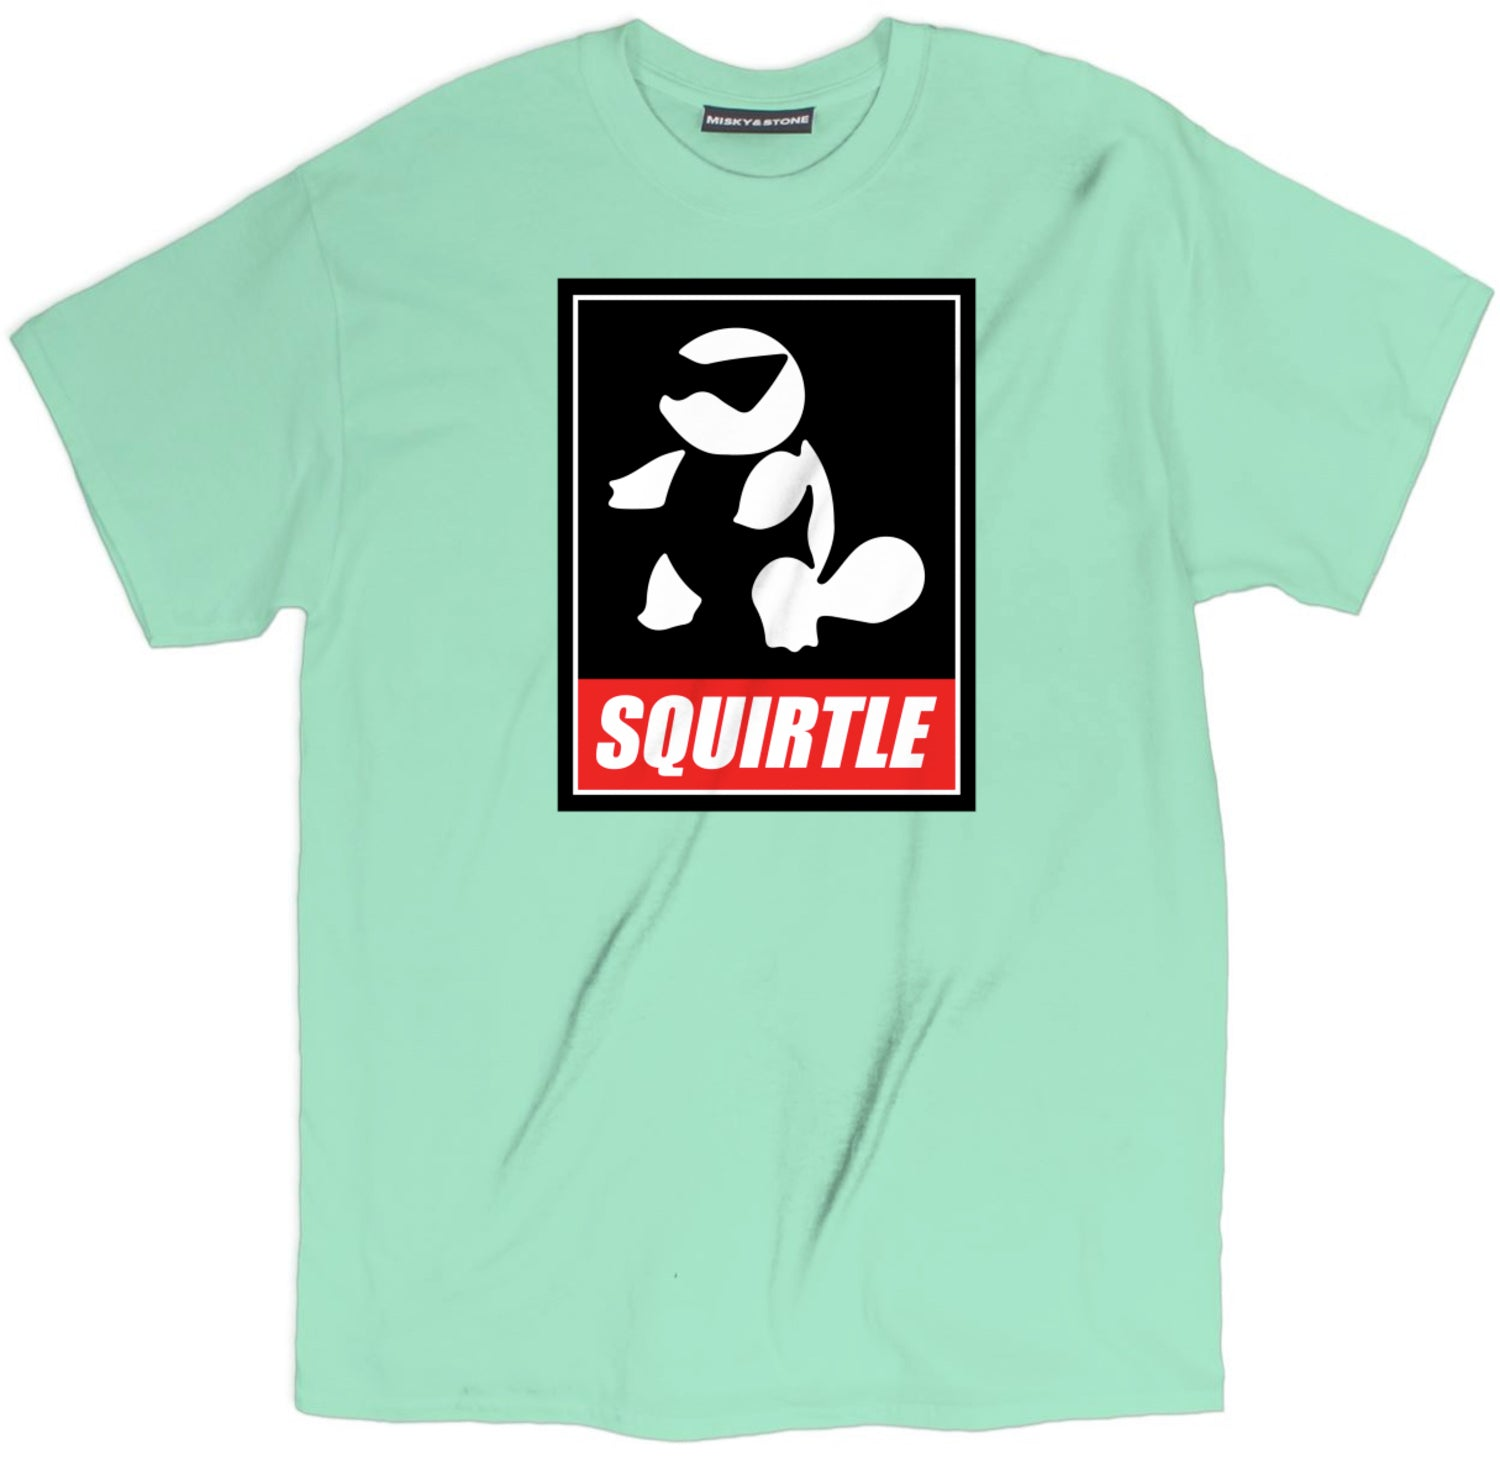 Squirtle Sunglasses Tee